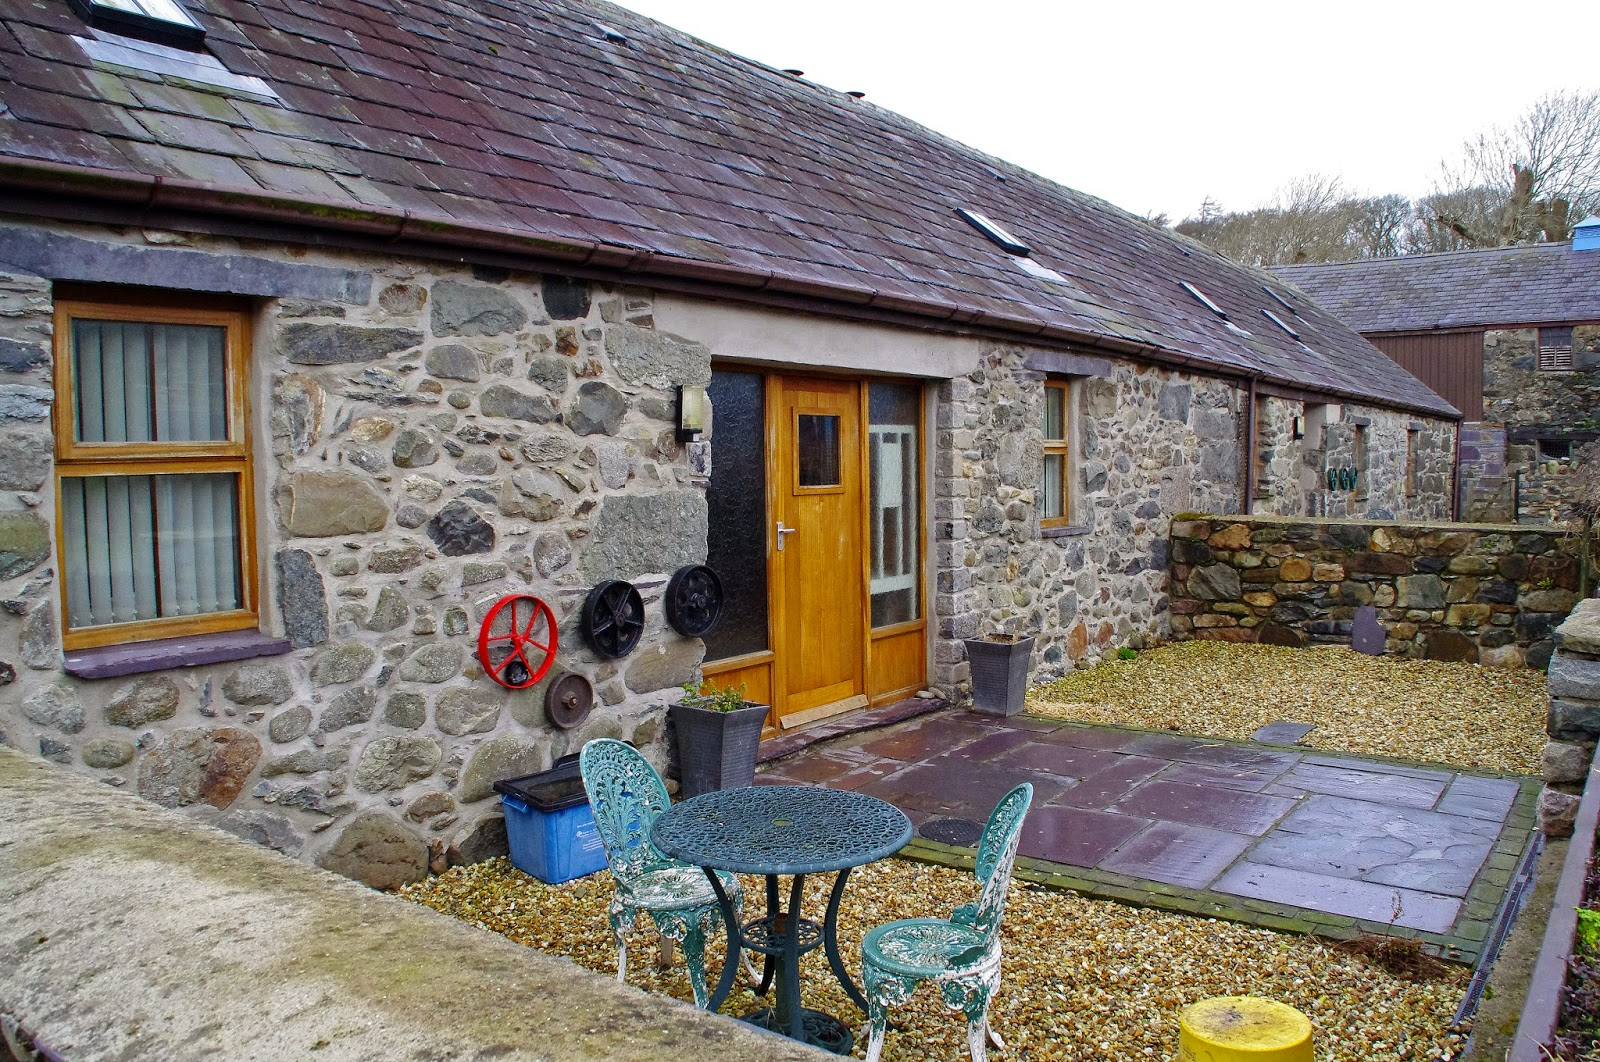 http://www.theaussieflashpacker.com/2015/03/luxury-accommodation-review-beudy-mawr.html